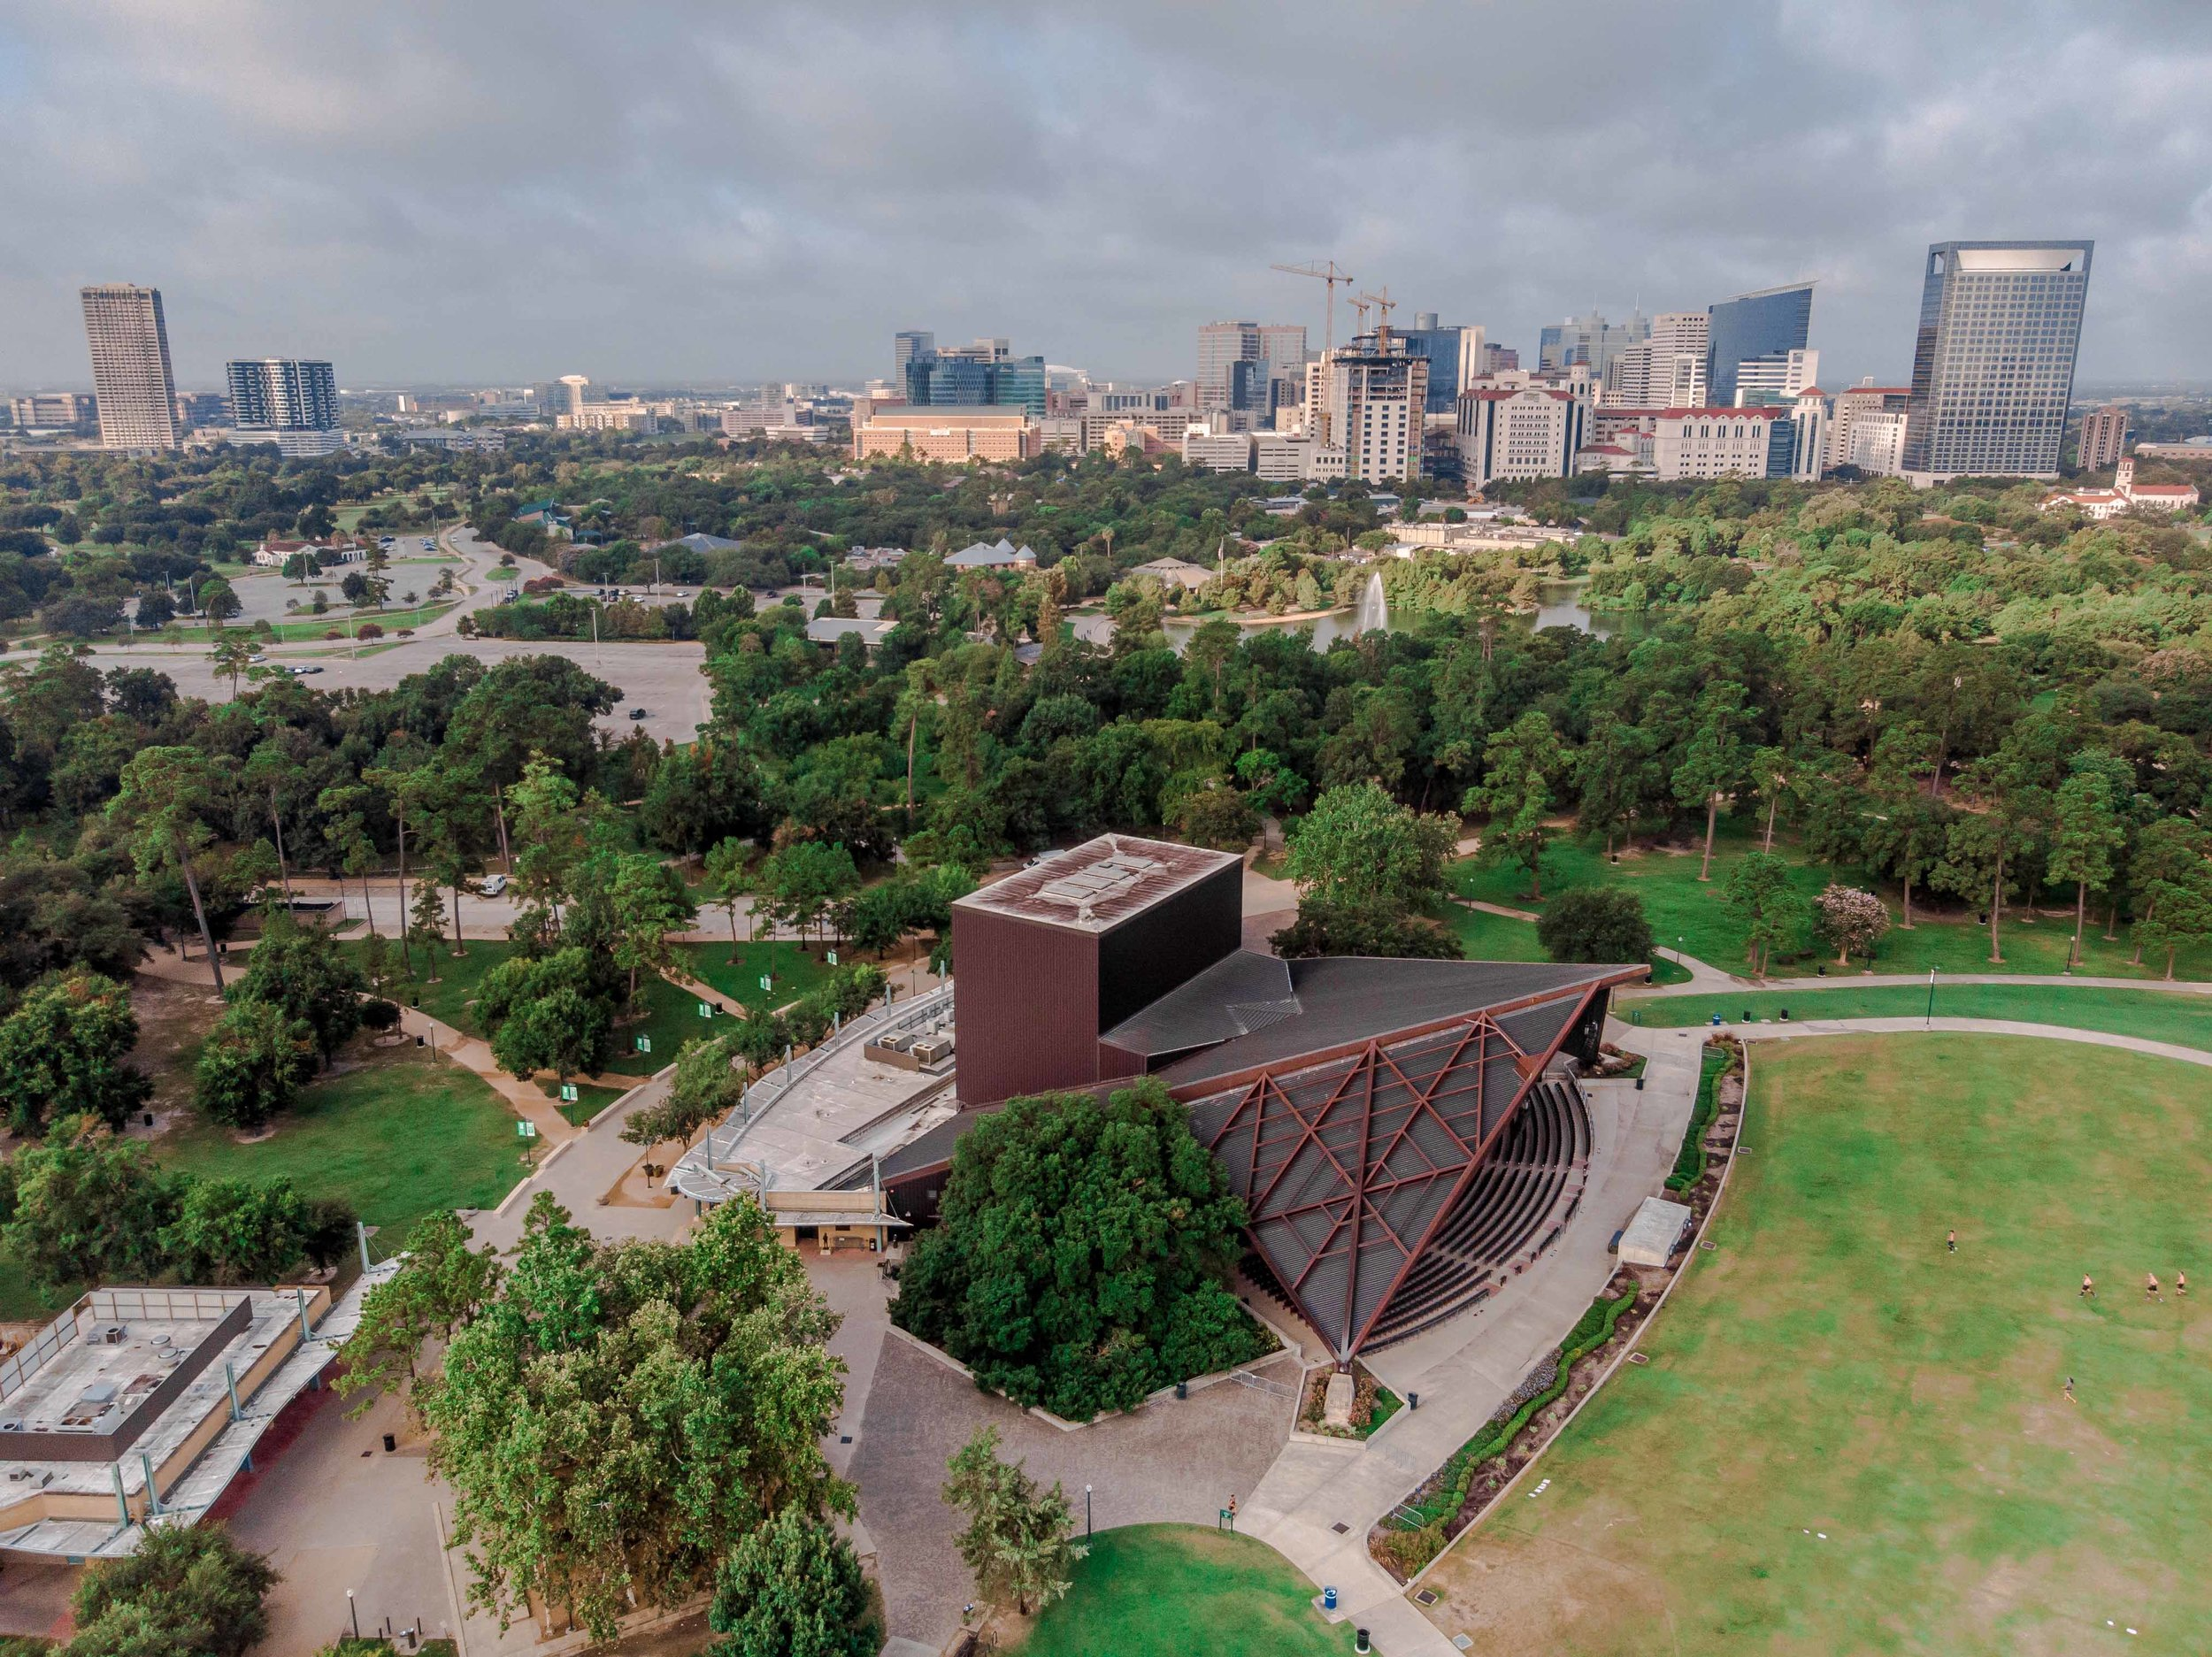 Looking South Towards the TMC from Hermann Park - Houston, TX | 2018